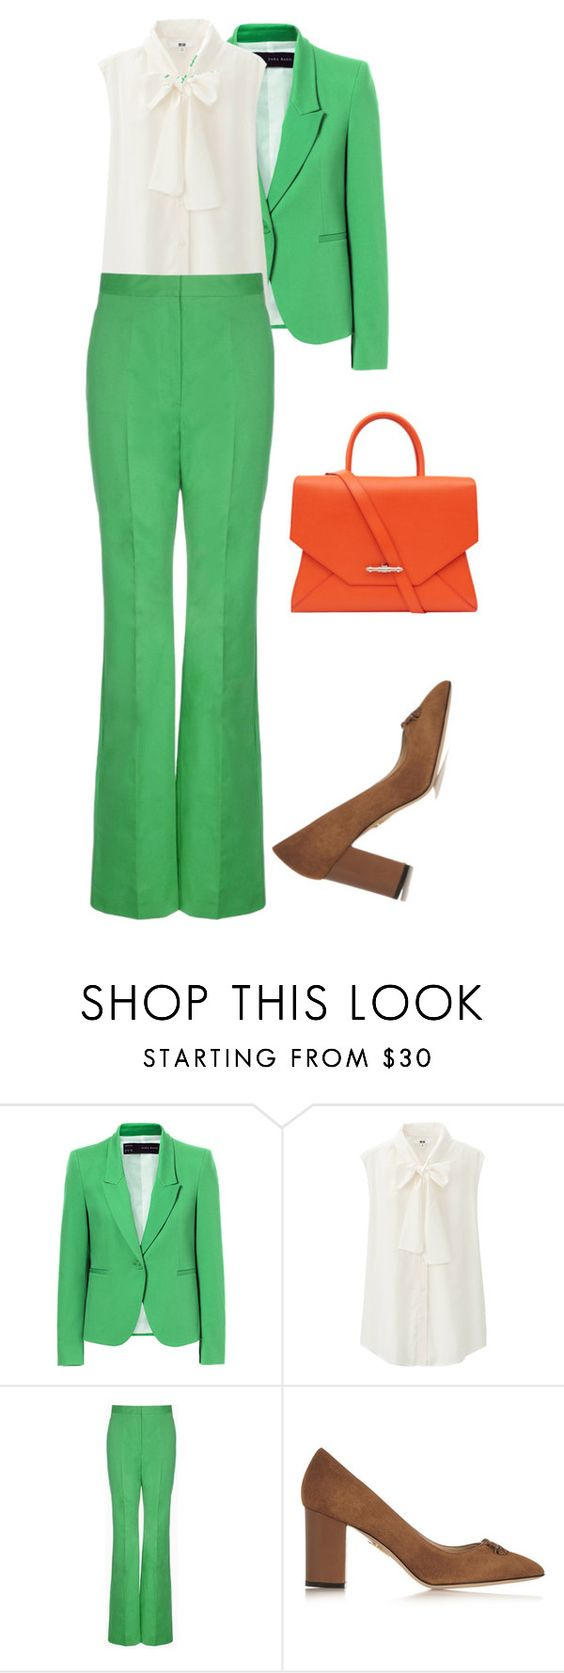 """""""#428"""" by nandamfontes ❤ liked on Polyvore featuring Zara, Uniqlo, STELLA McCARTNEY, Charlotte Olympia and Givenchy"""